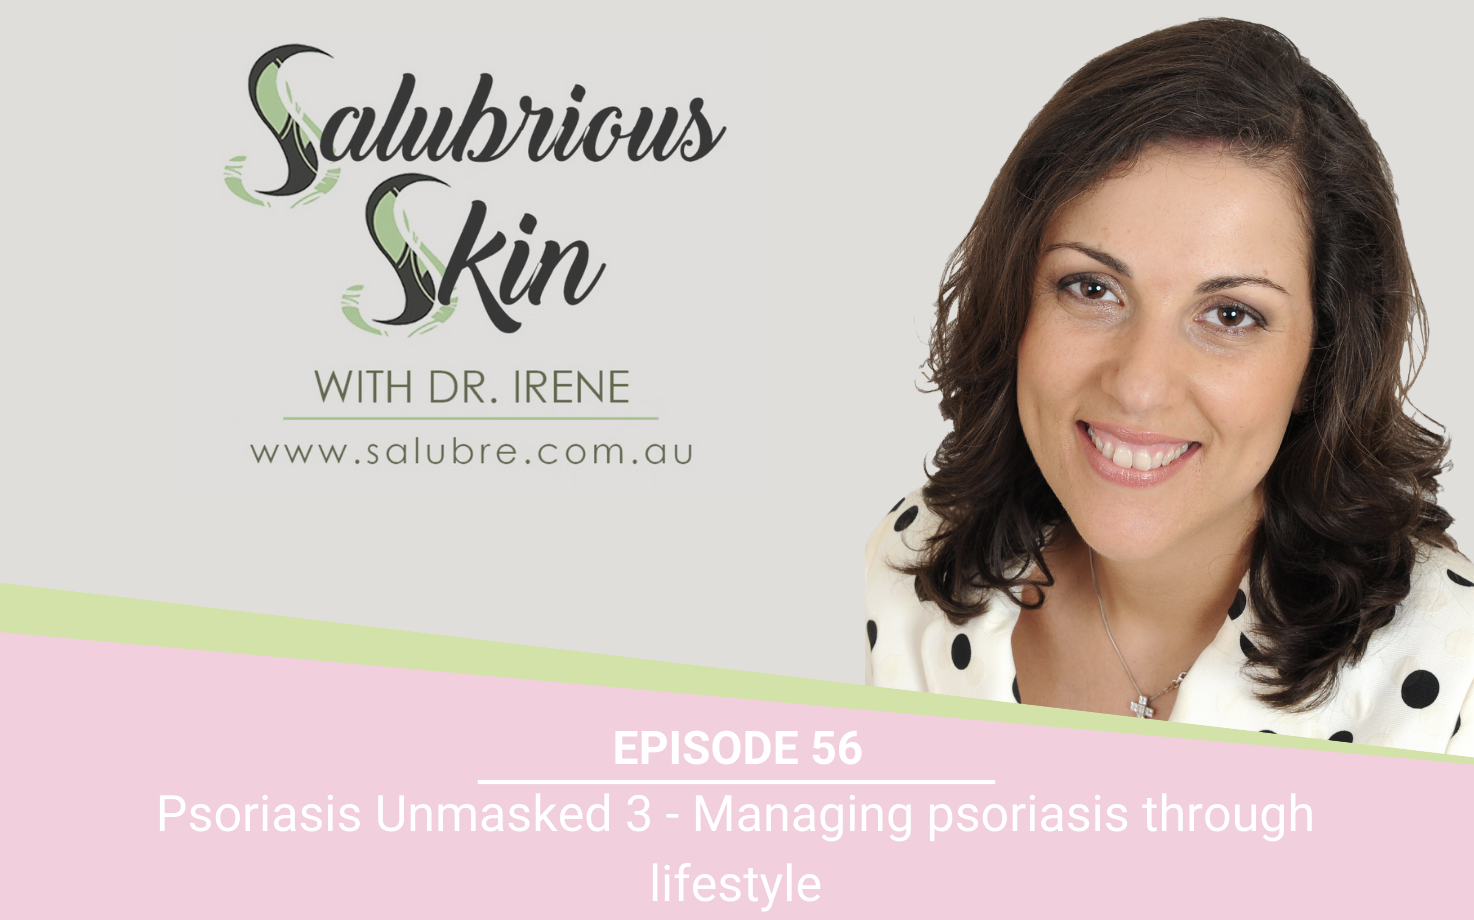 Podcast 56: Psoriasis Unmasked 3 - A Lifestyle that is conducive to the management of psoriasis